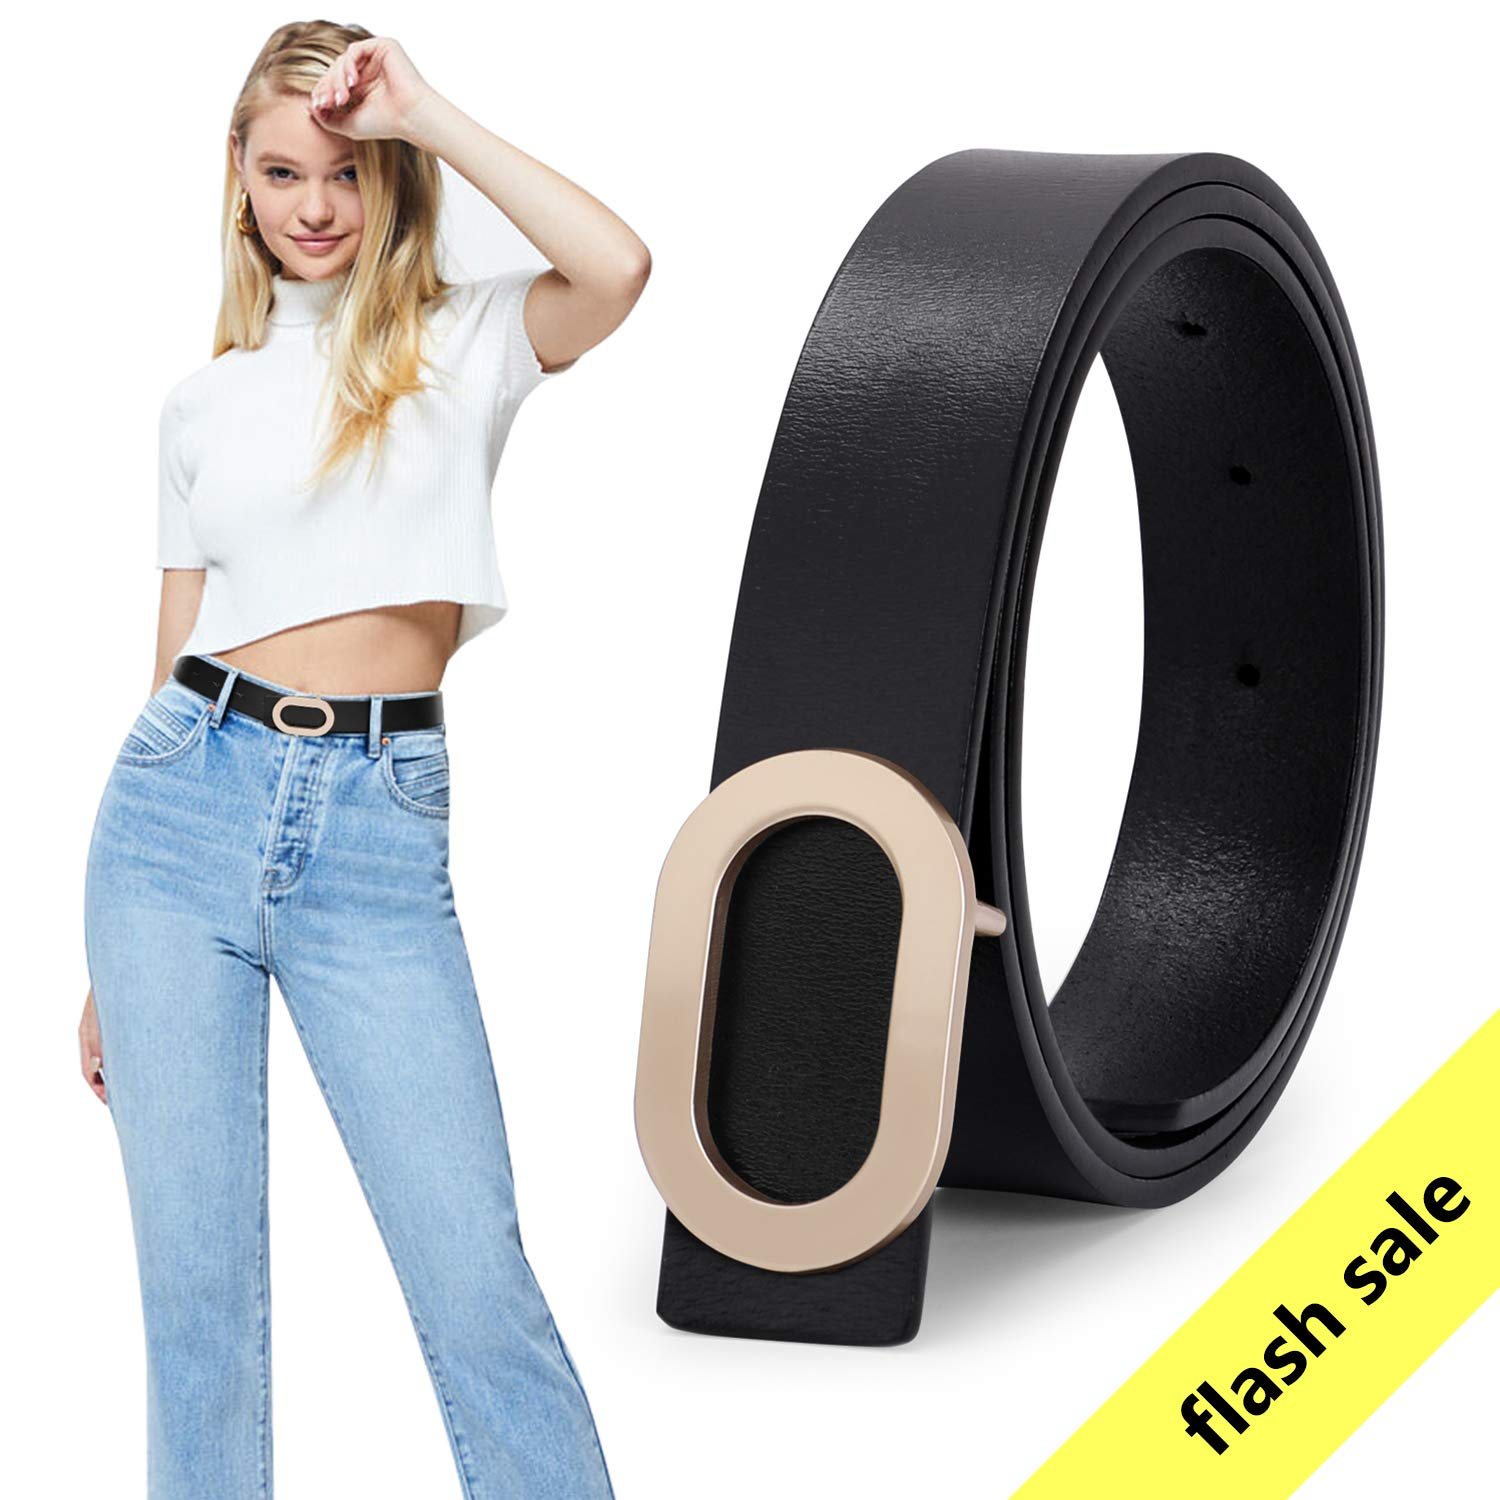 Good Quality belt